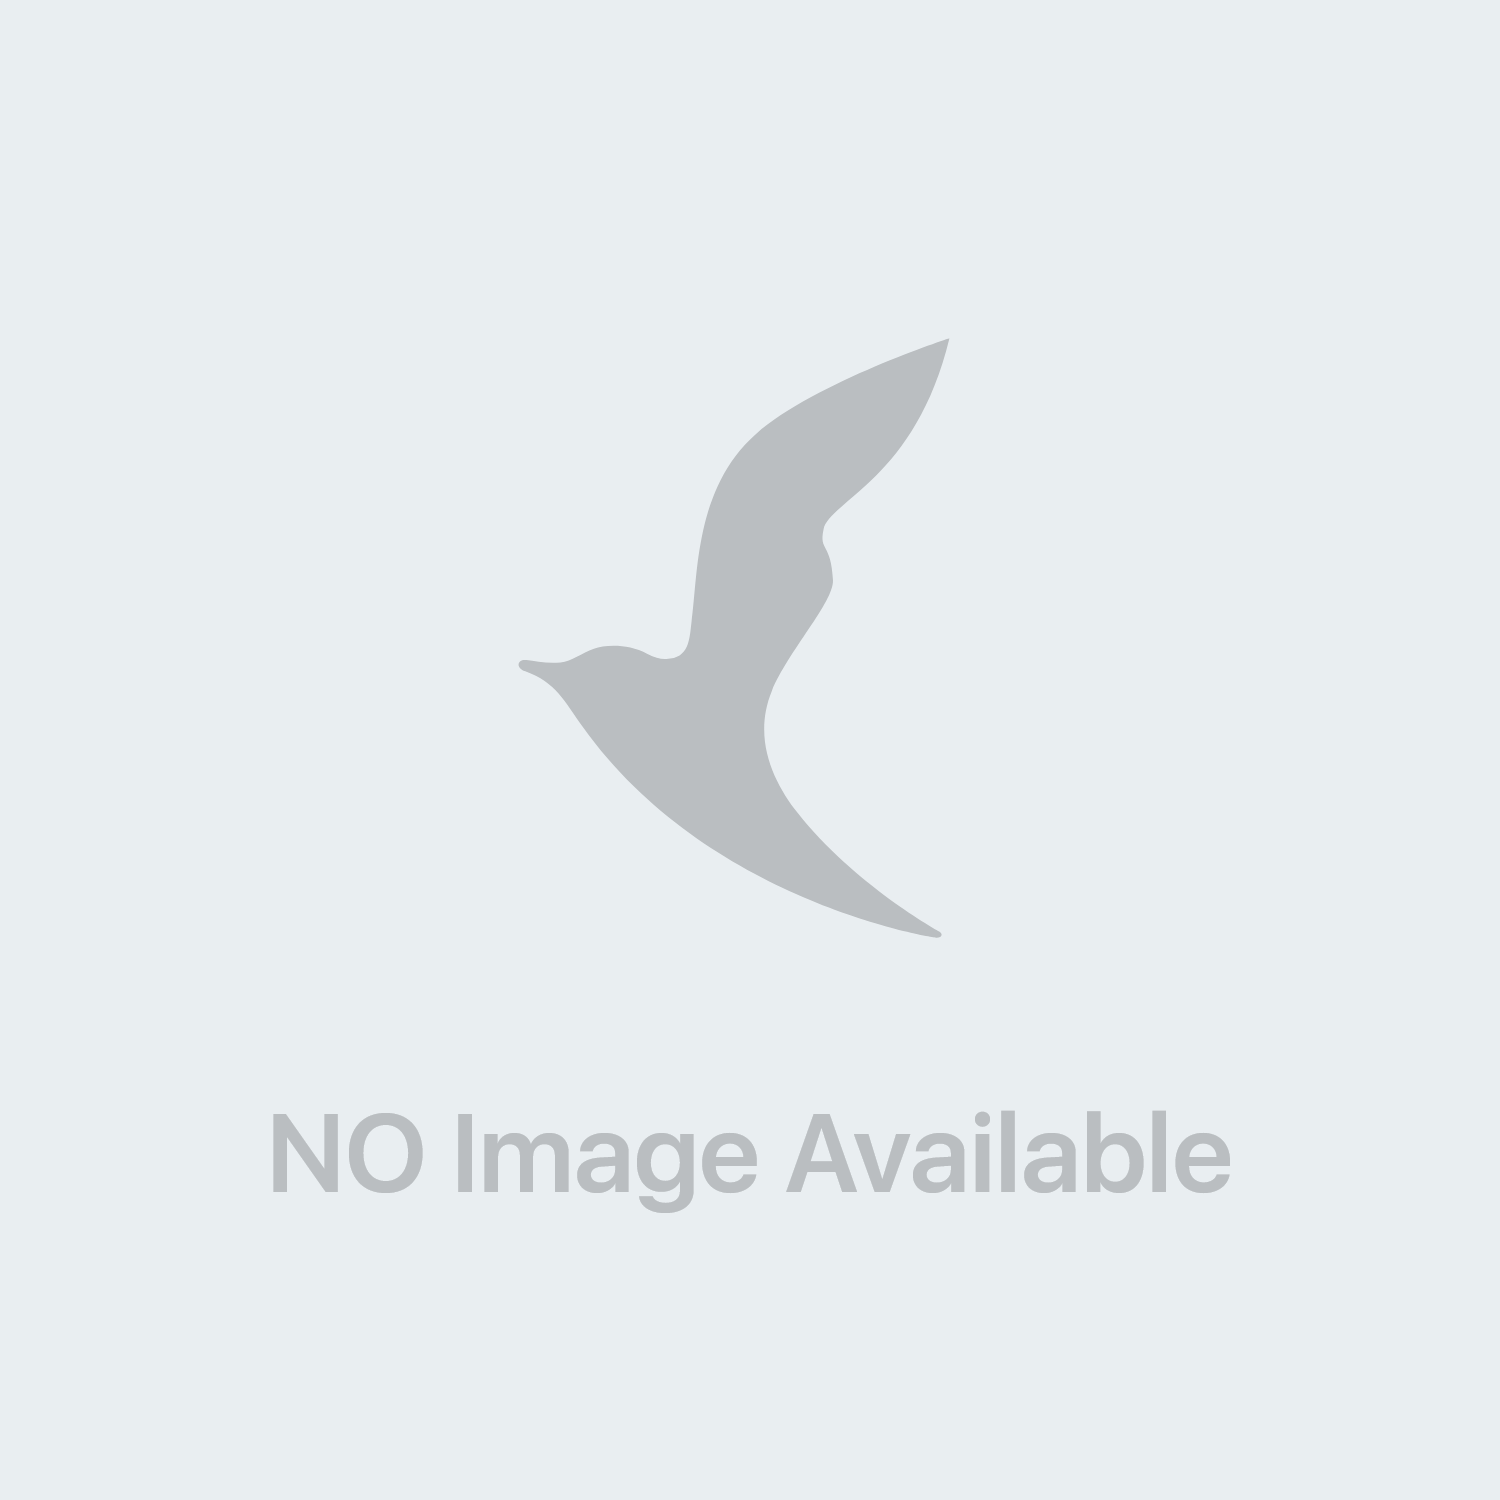 Bush Flower Emergency Ess Australian 30 Ml